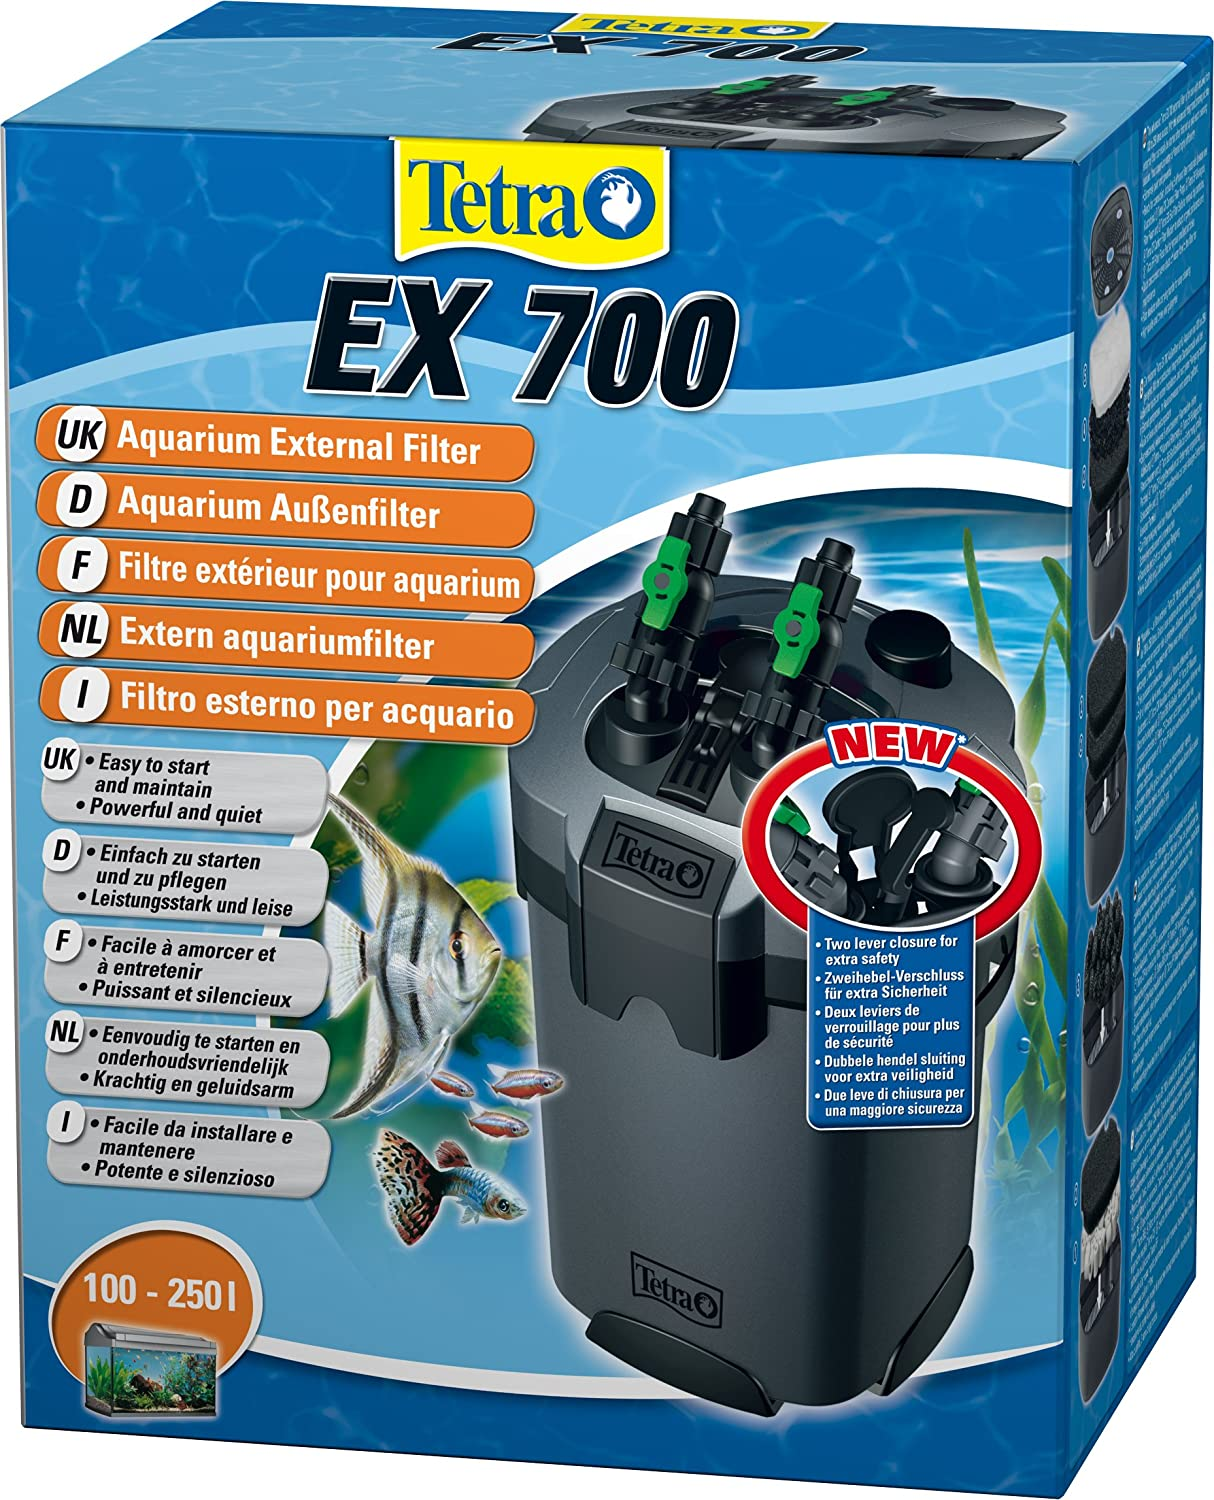 91ri1lf9JjL._SL1500_ tetra tec ex 700 external filter amazon co uk pet supplies  at honlapkeszites.co